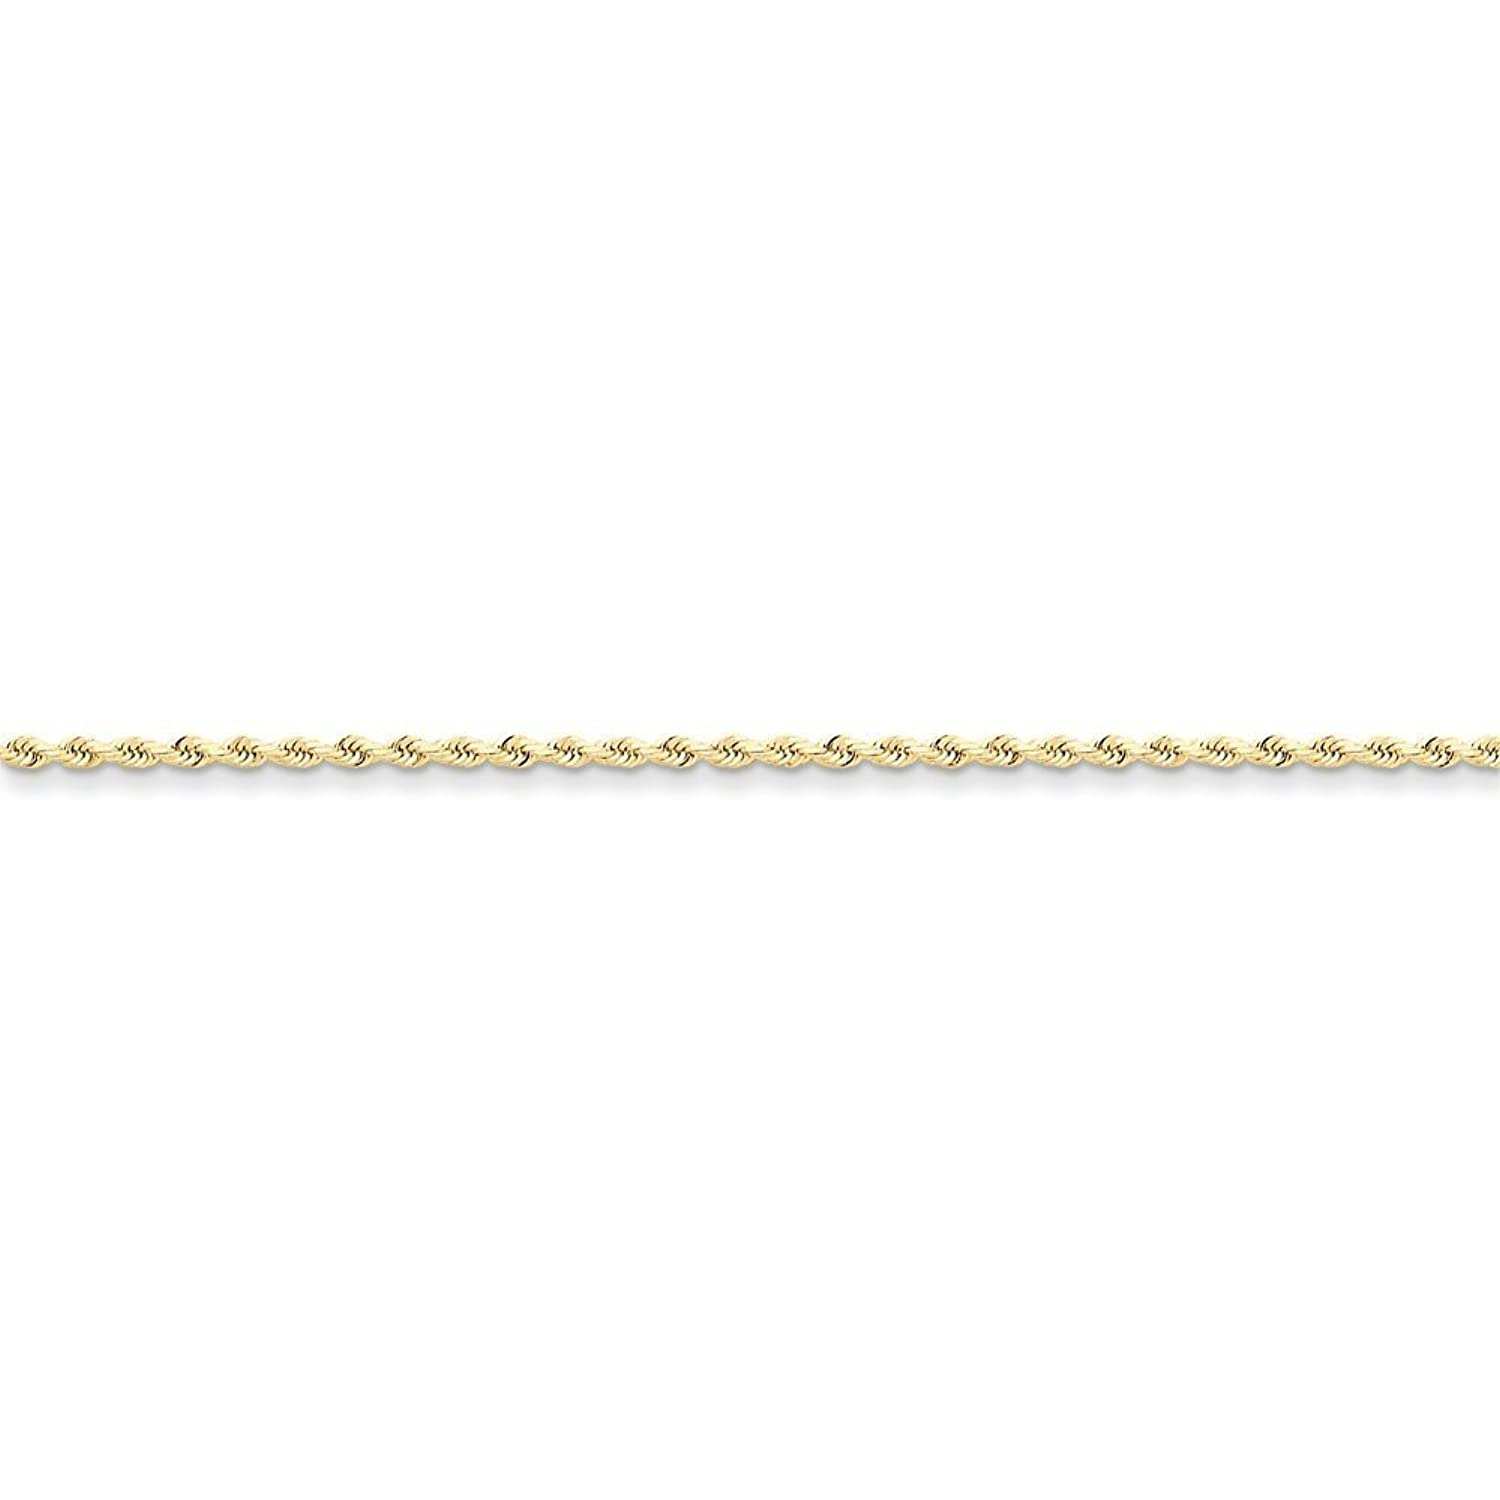 10K Yellow Gold 2mm Faceted-Cut Rope Chain Anklet, 9""